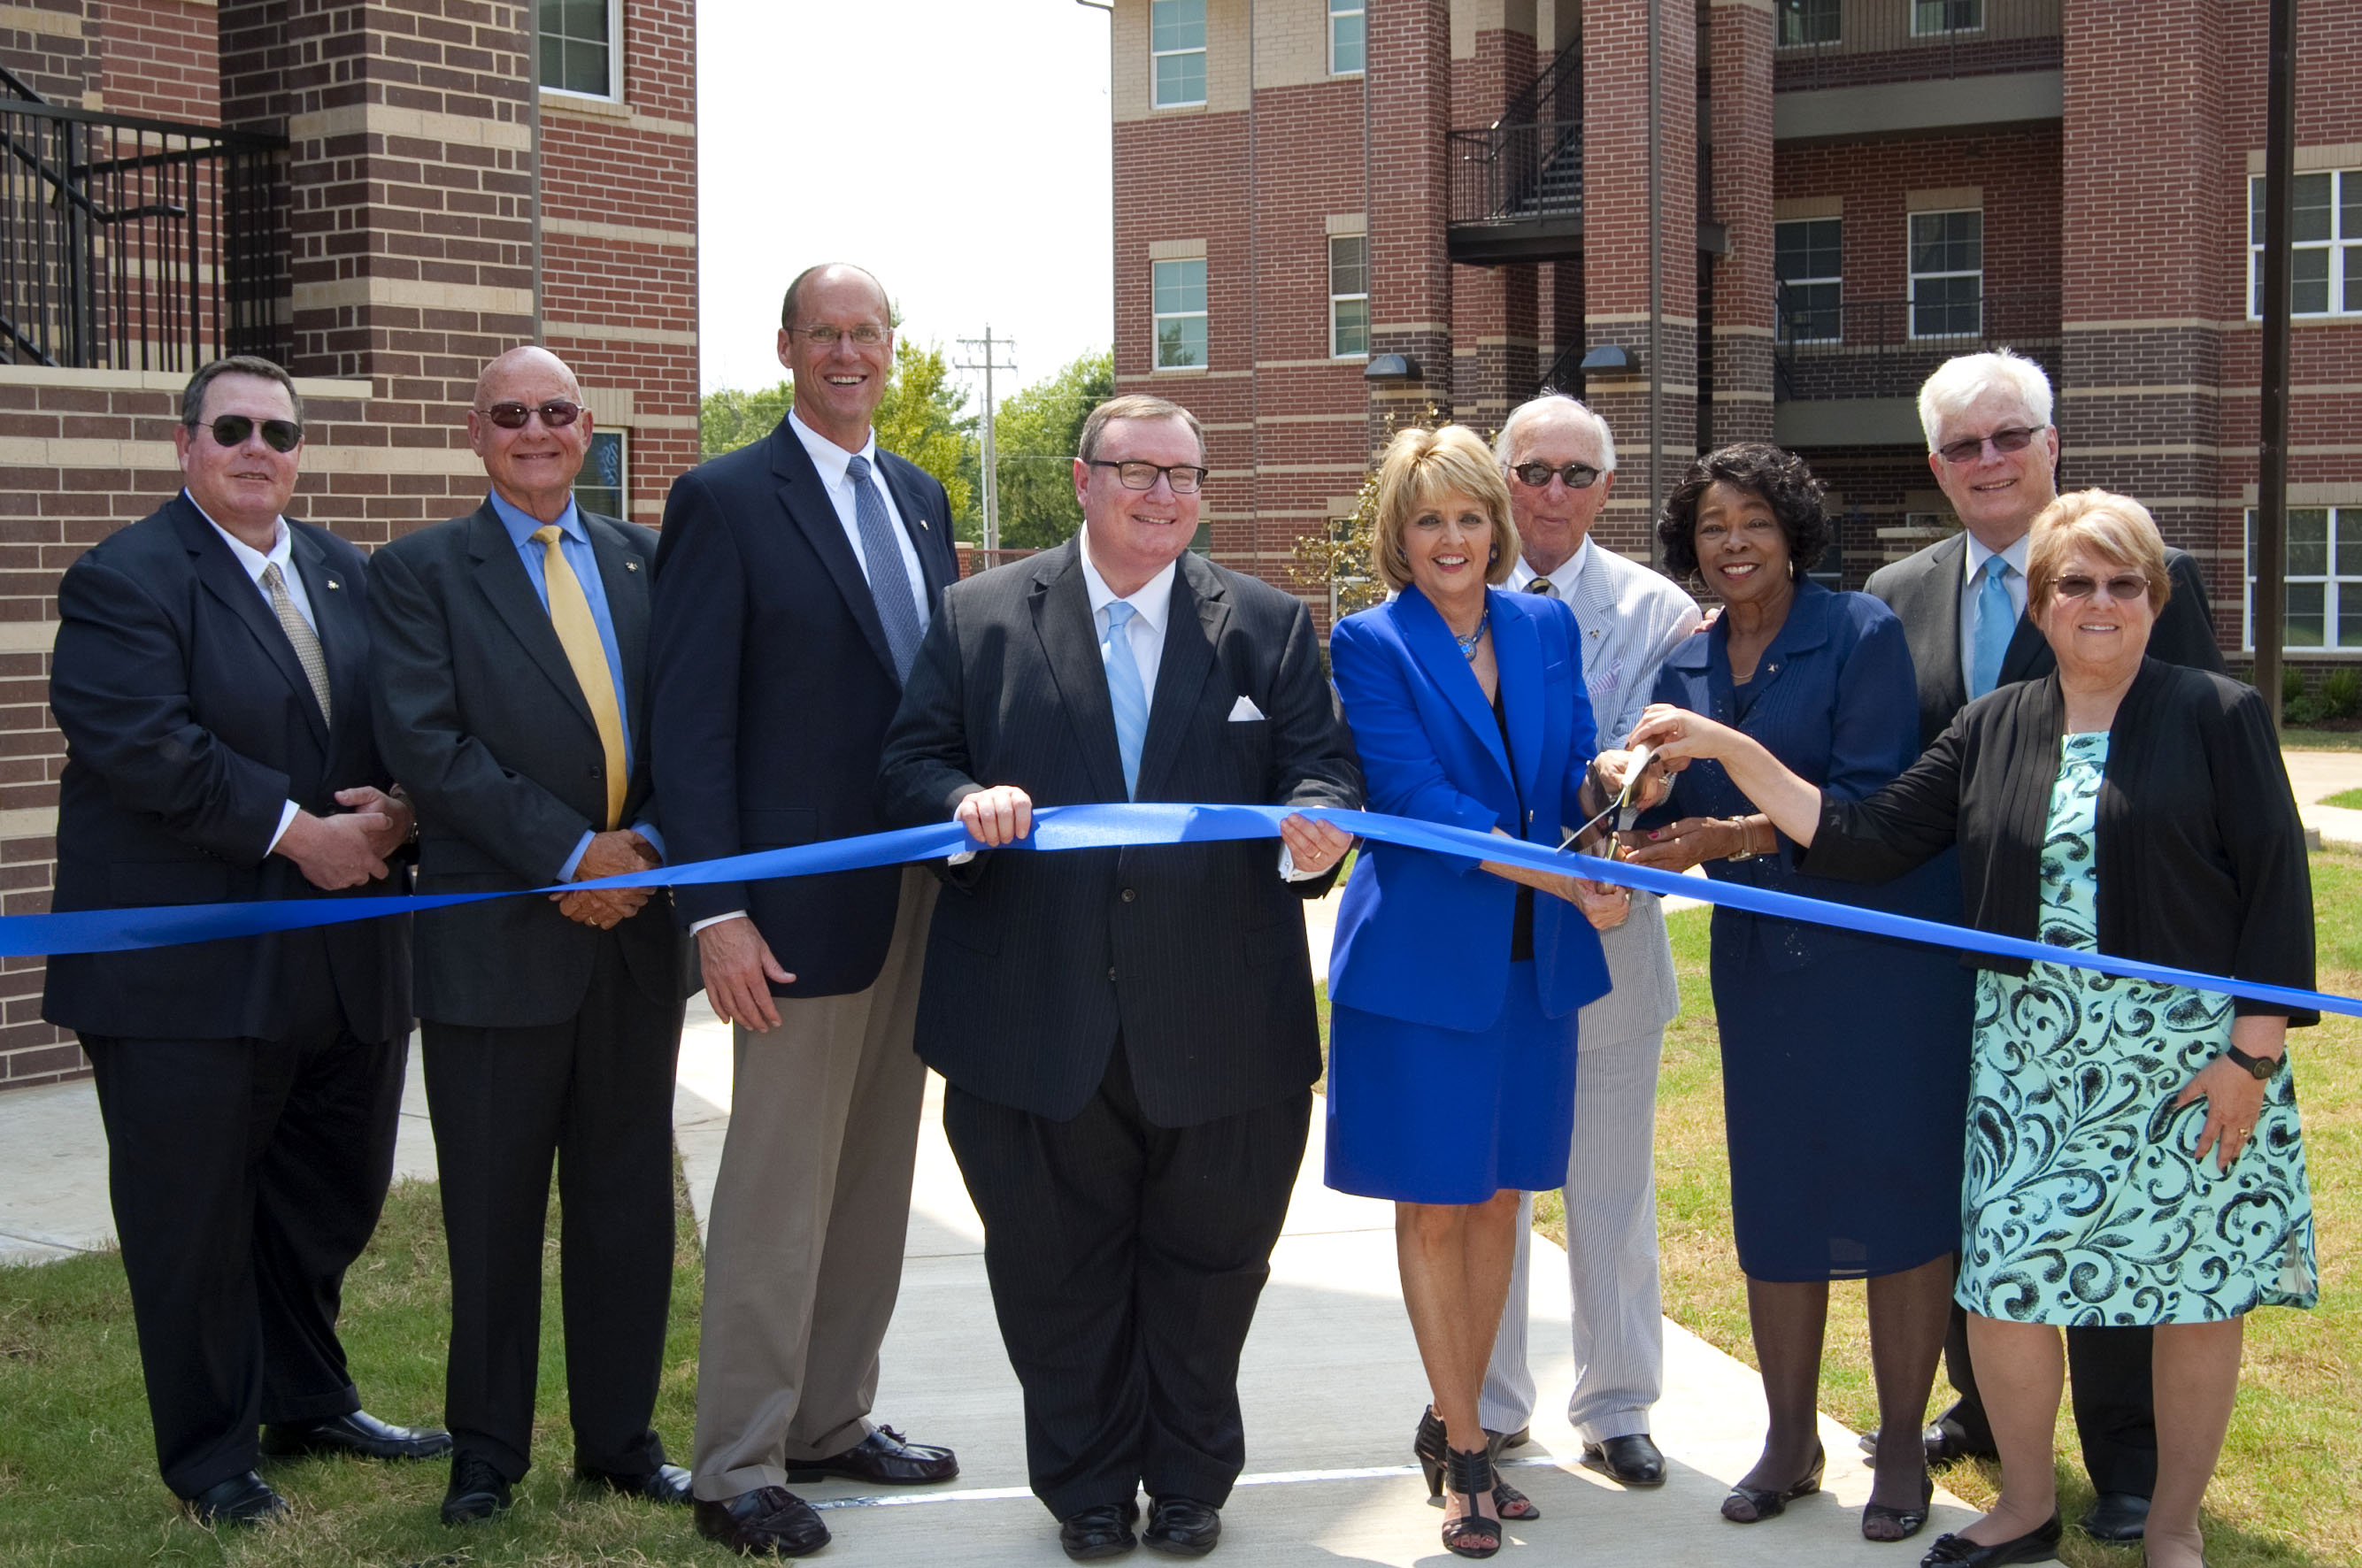 Photo cutline: Oklahoma State Regents for Higher Education Chancellor, Glen Johnson, Rose State College President, Jeanie Webb and the Rose State College Board of Regents officially open the Village @ Rose State with a ribbon cutting ceremony.